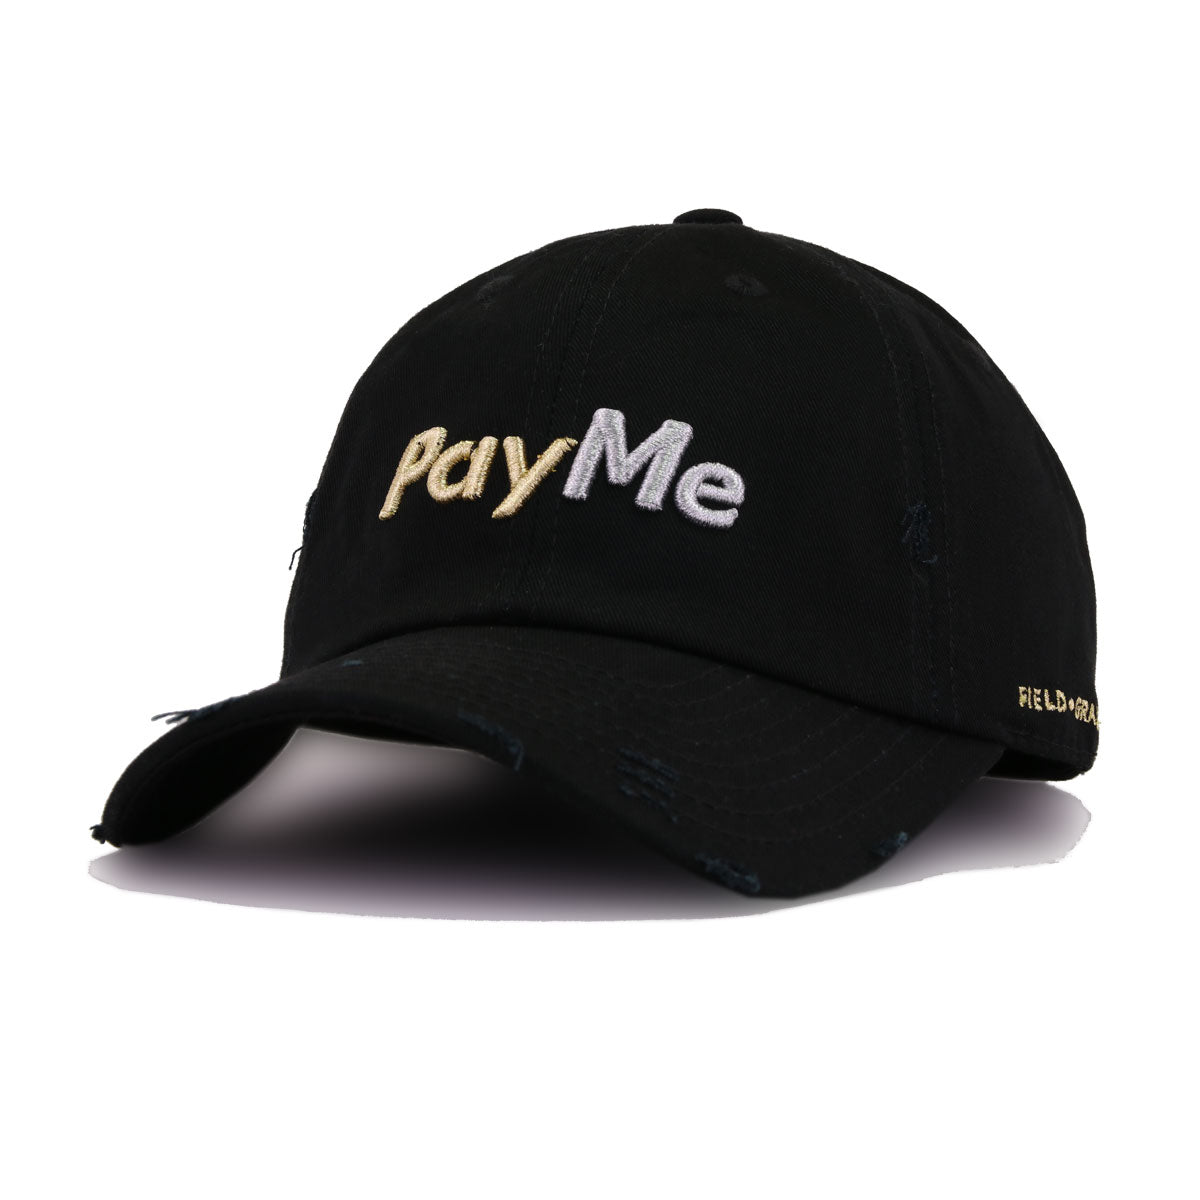 PayMe Black Field Grade Distressed Dad Hat